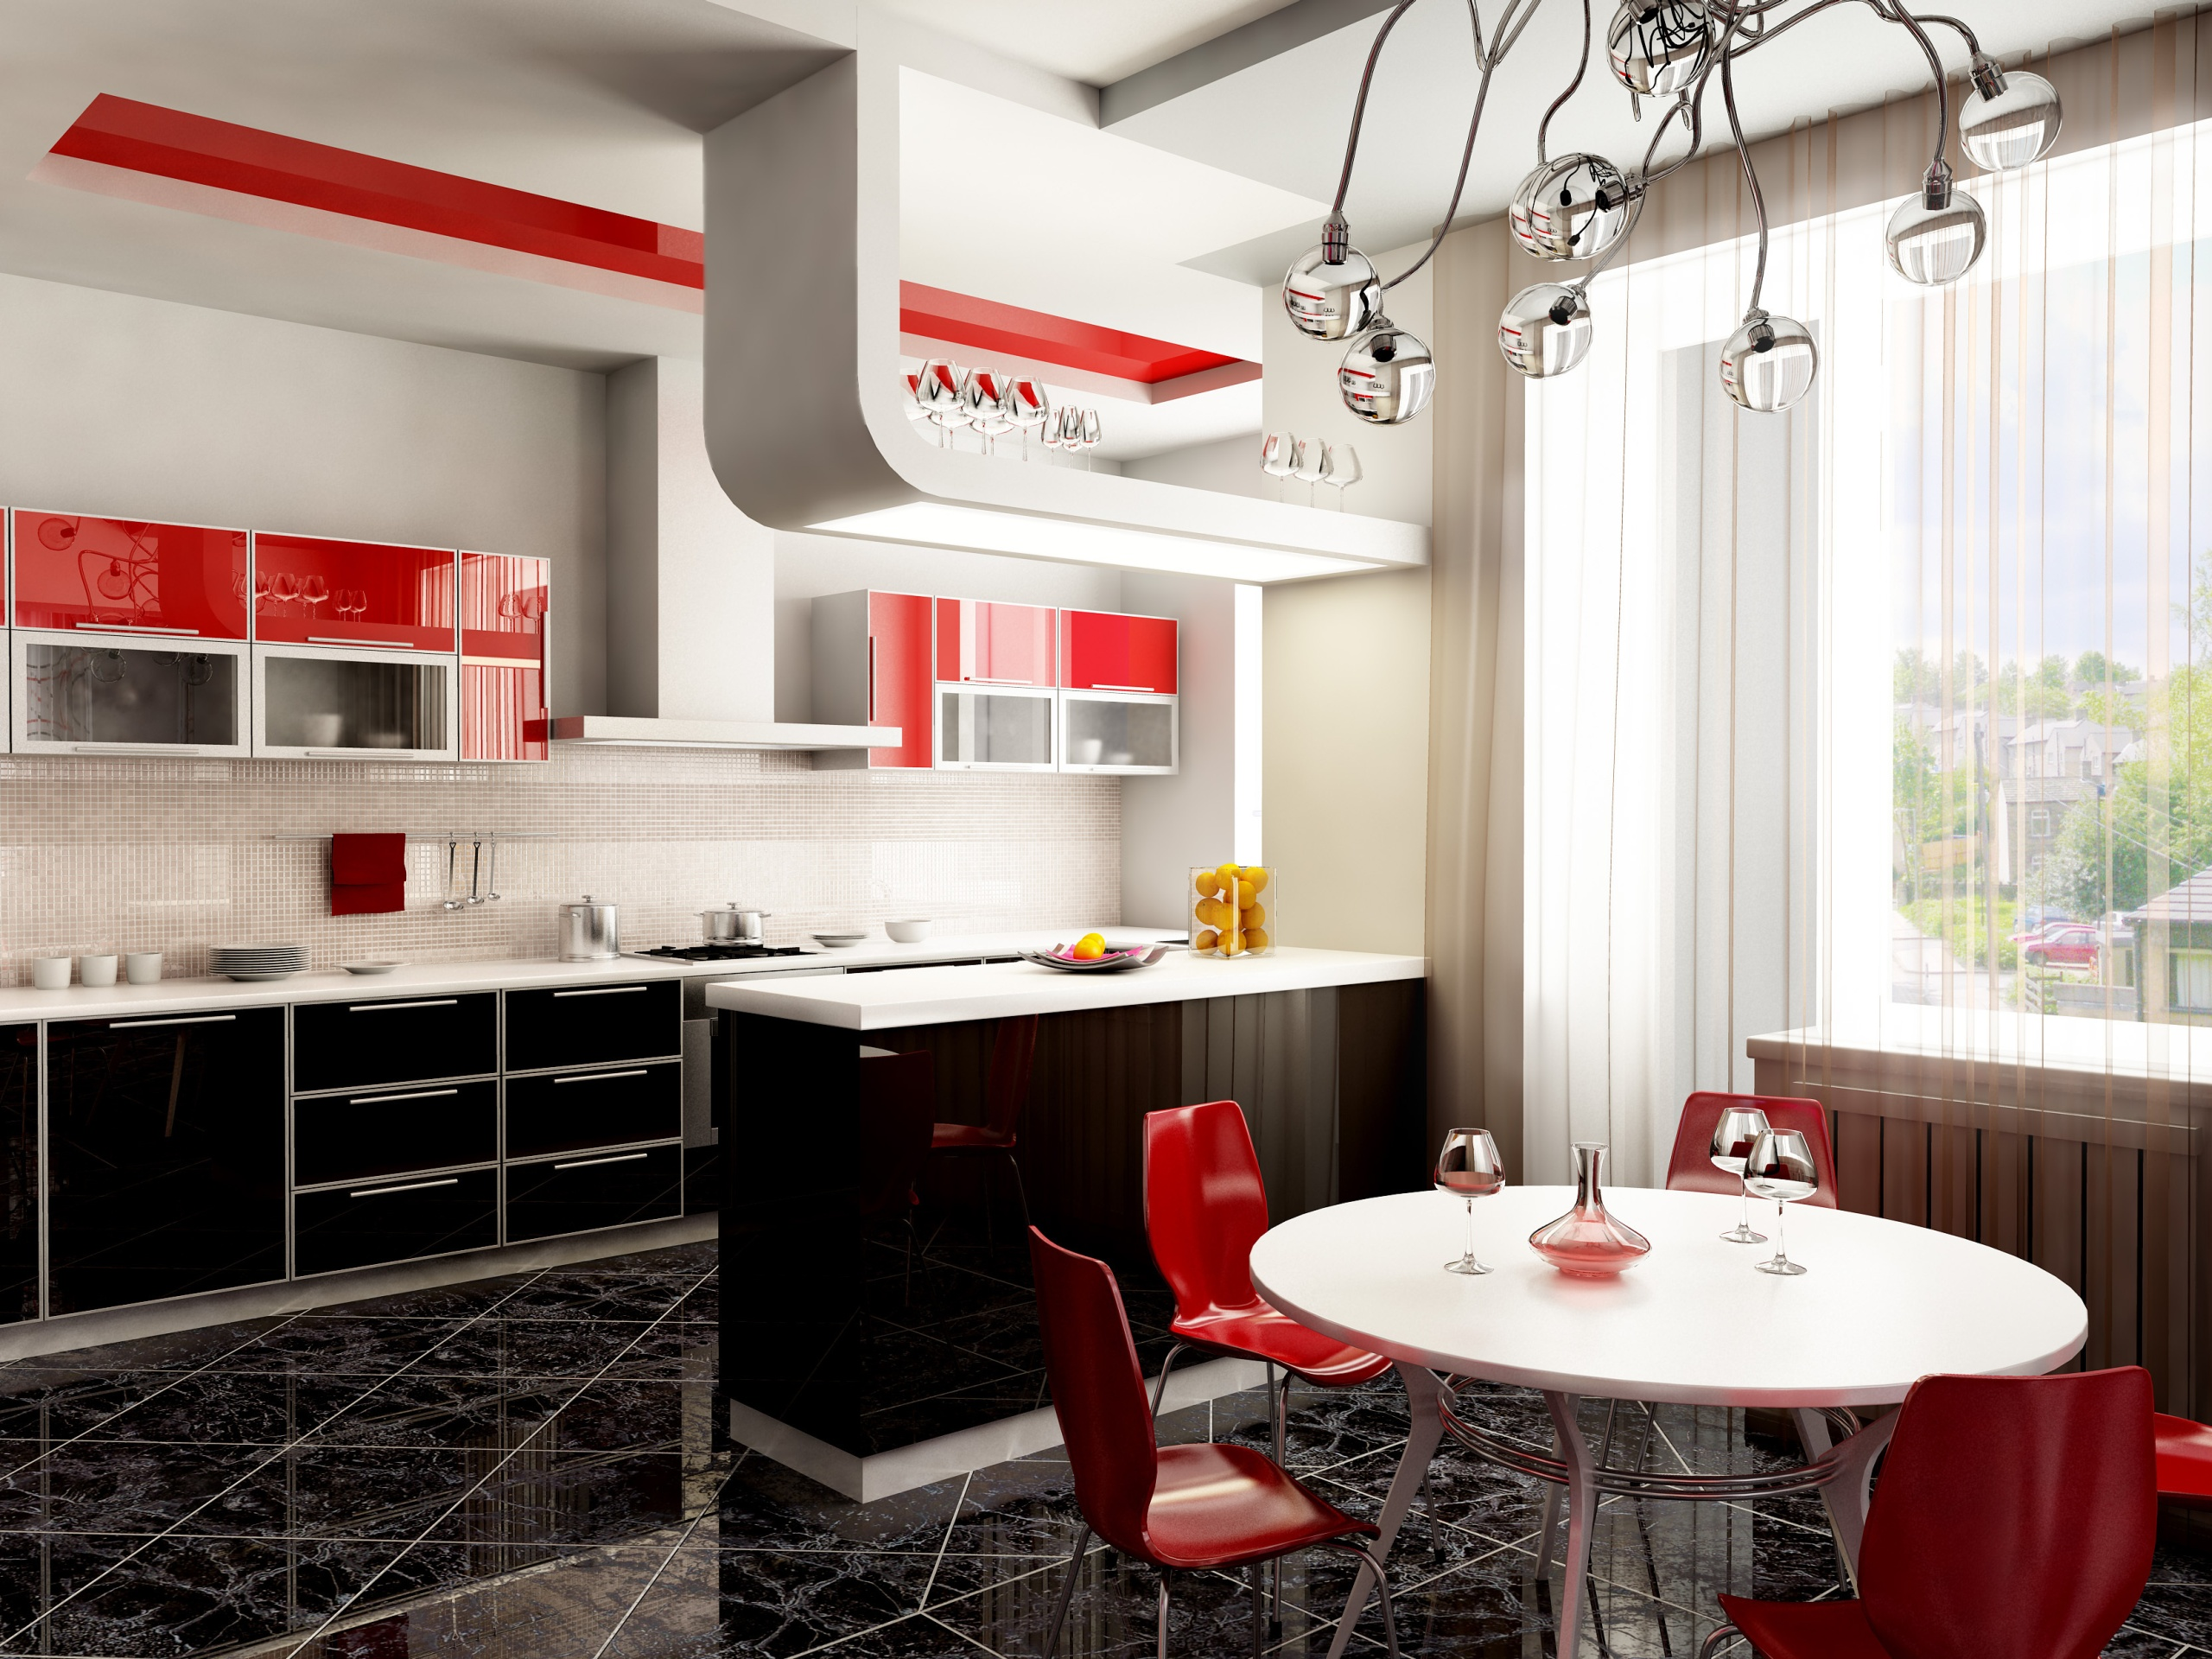 click to free download the wallpaper--Home Design Image, Kitchen in Red, Great Nature Landscape Outdoor 2560X1920 free wallpaper download